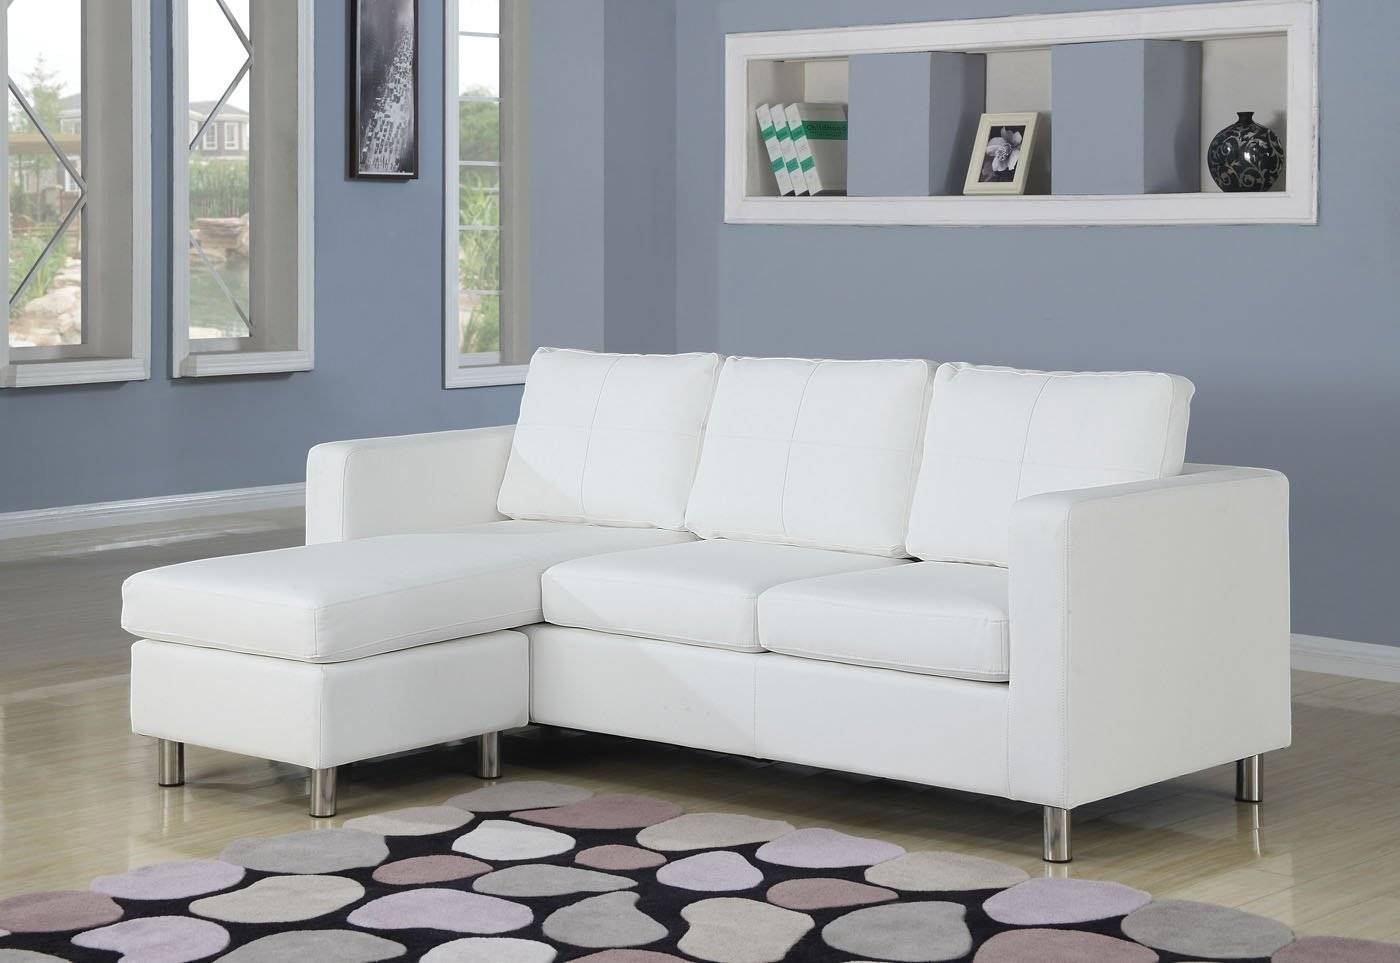 Stunning Small Scale Sectional Sofa With Chaise 38 For Faux with regard to Small Scale Sofas (Image 13 of 15)